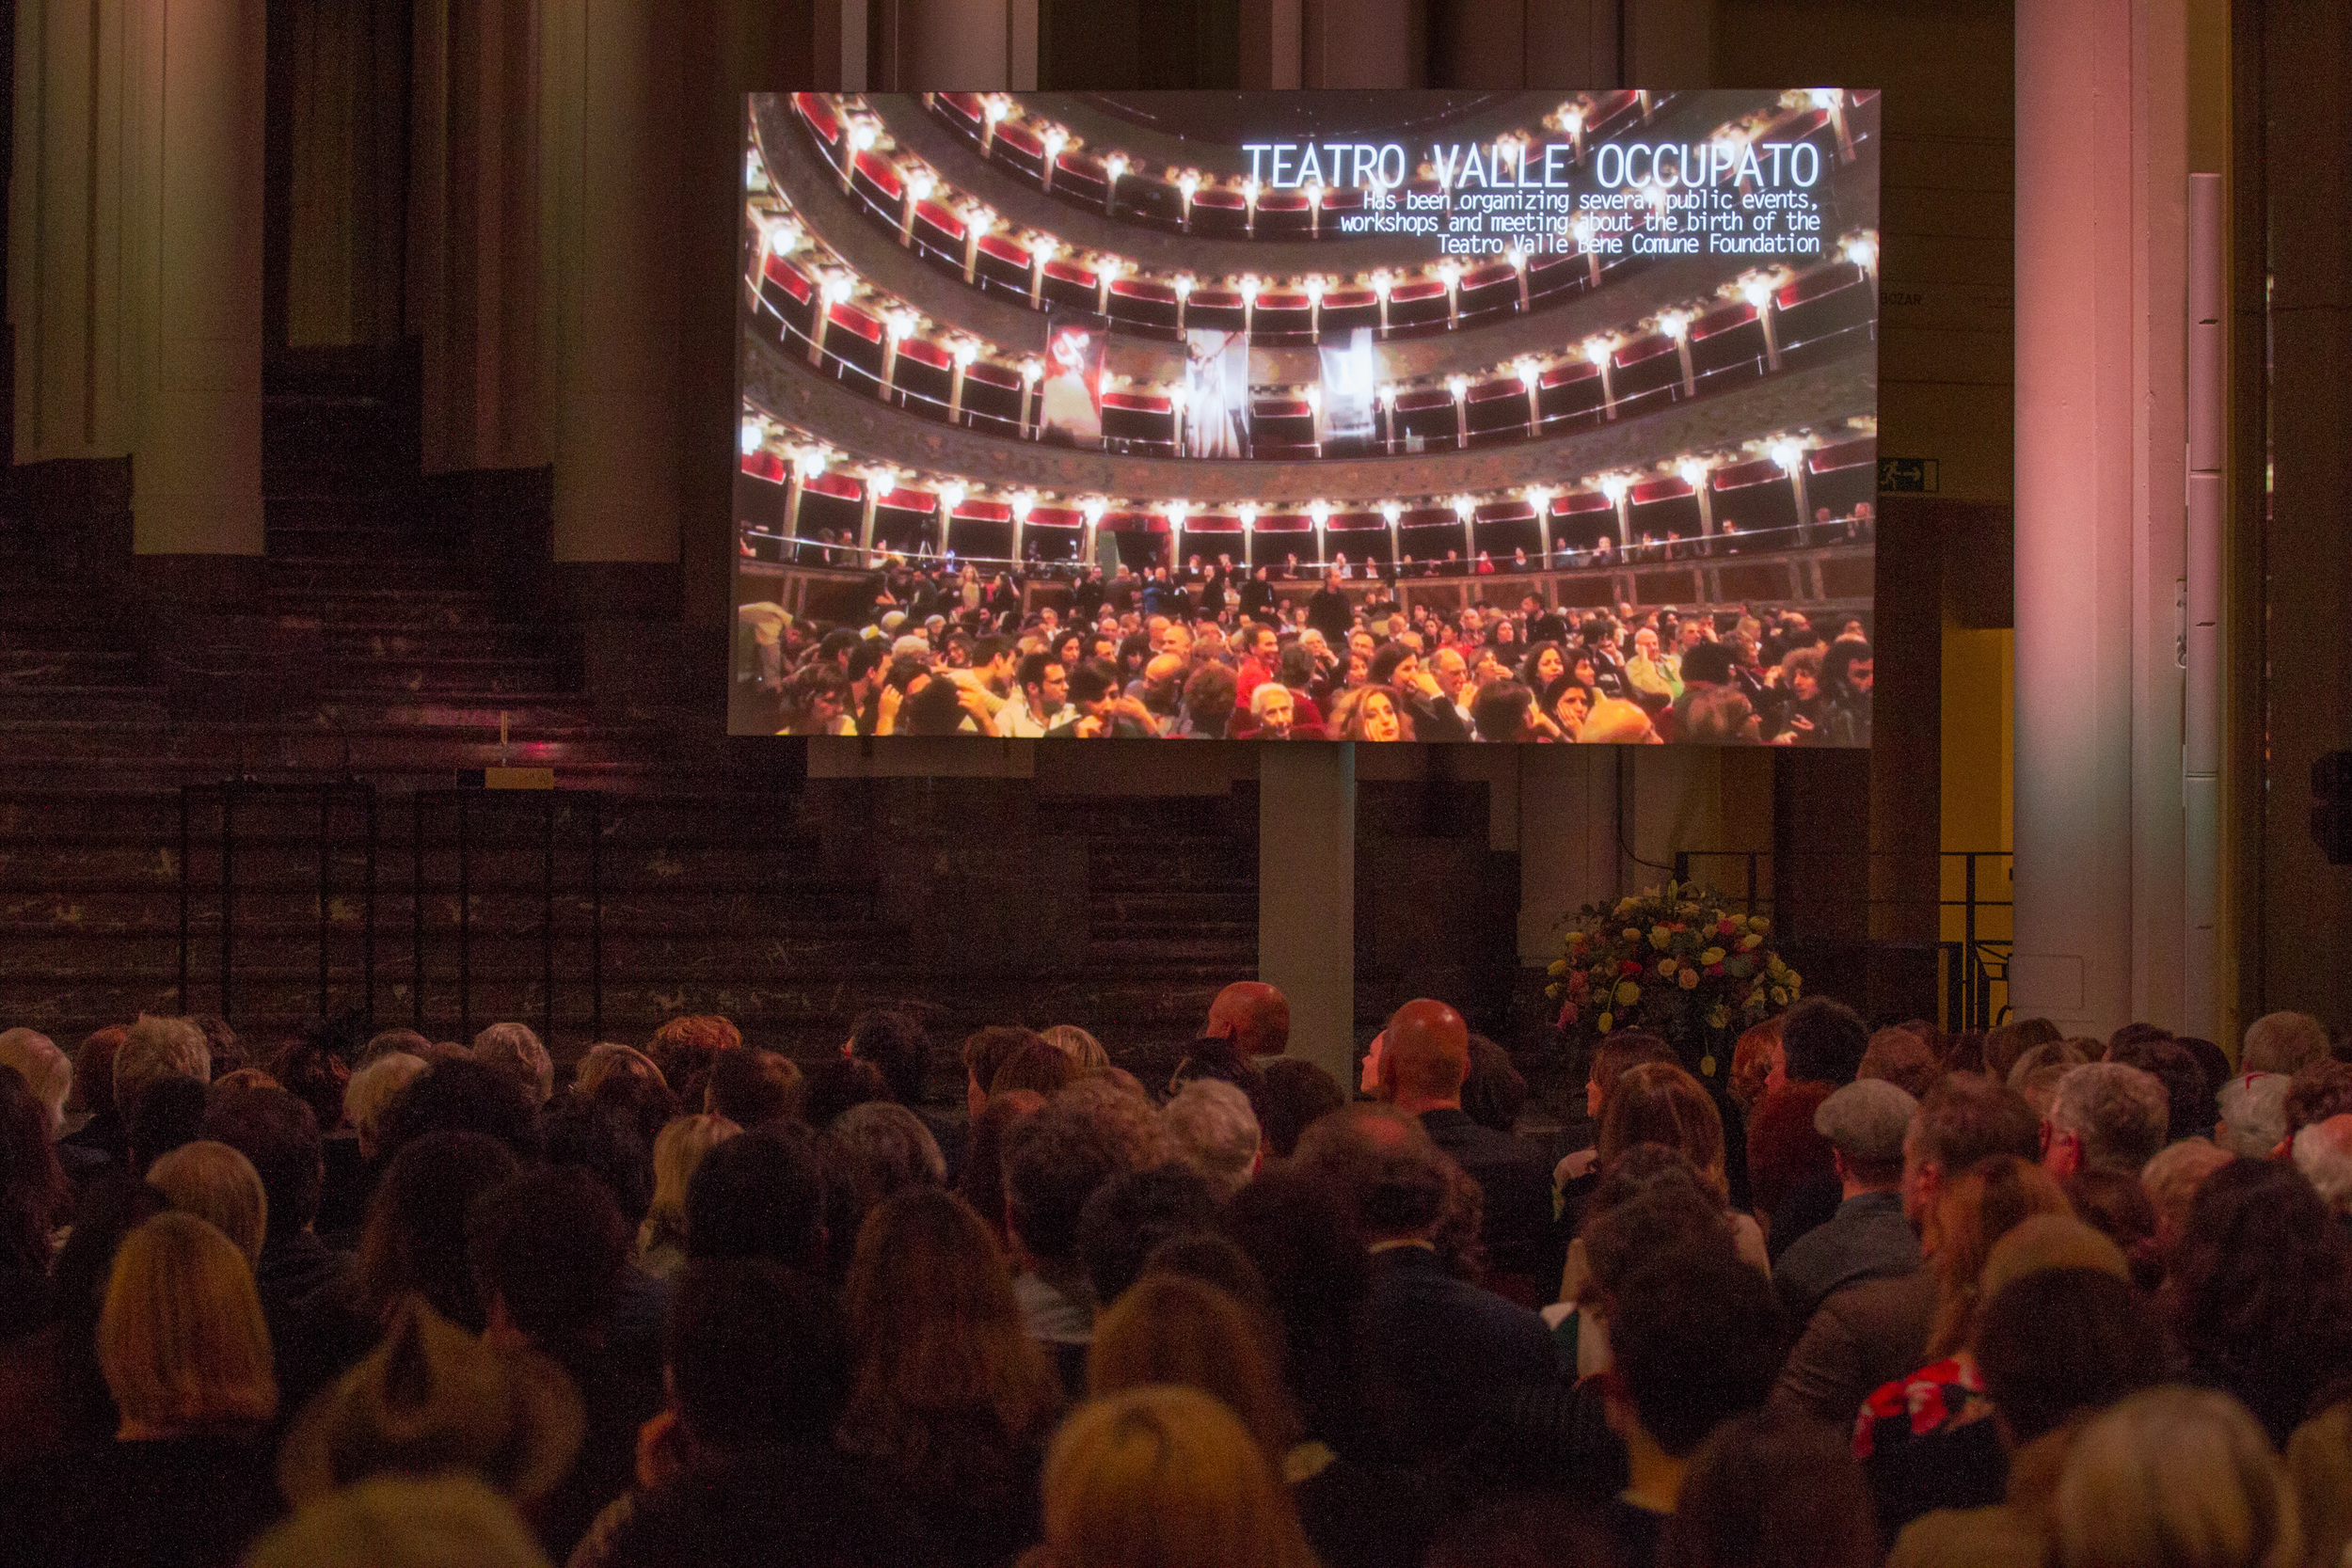 Members from Teatro Valle Occupato join on Skype. Photo ©Xander Remkes.